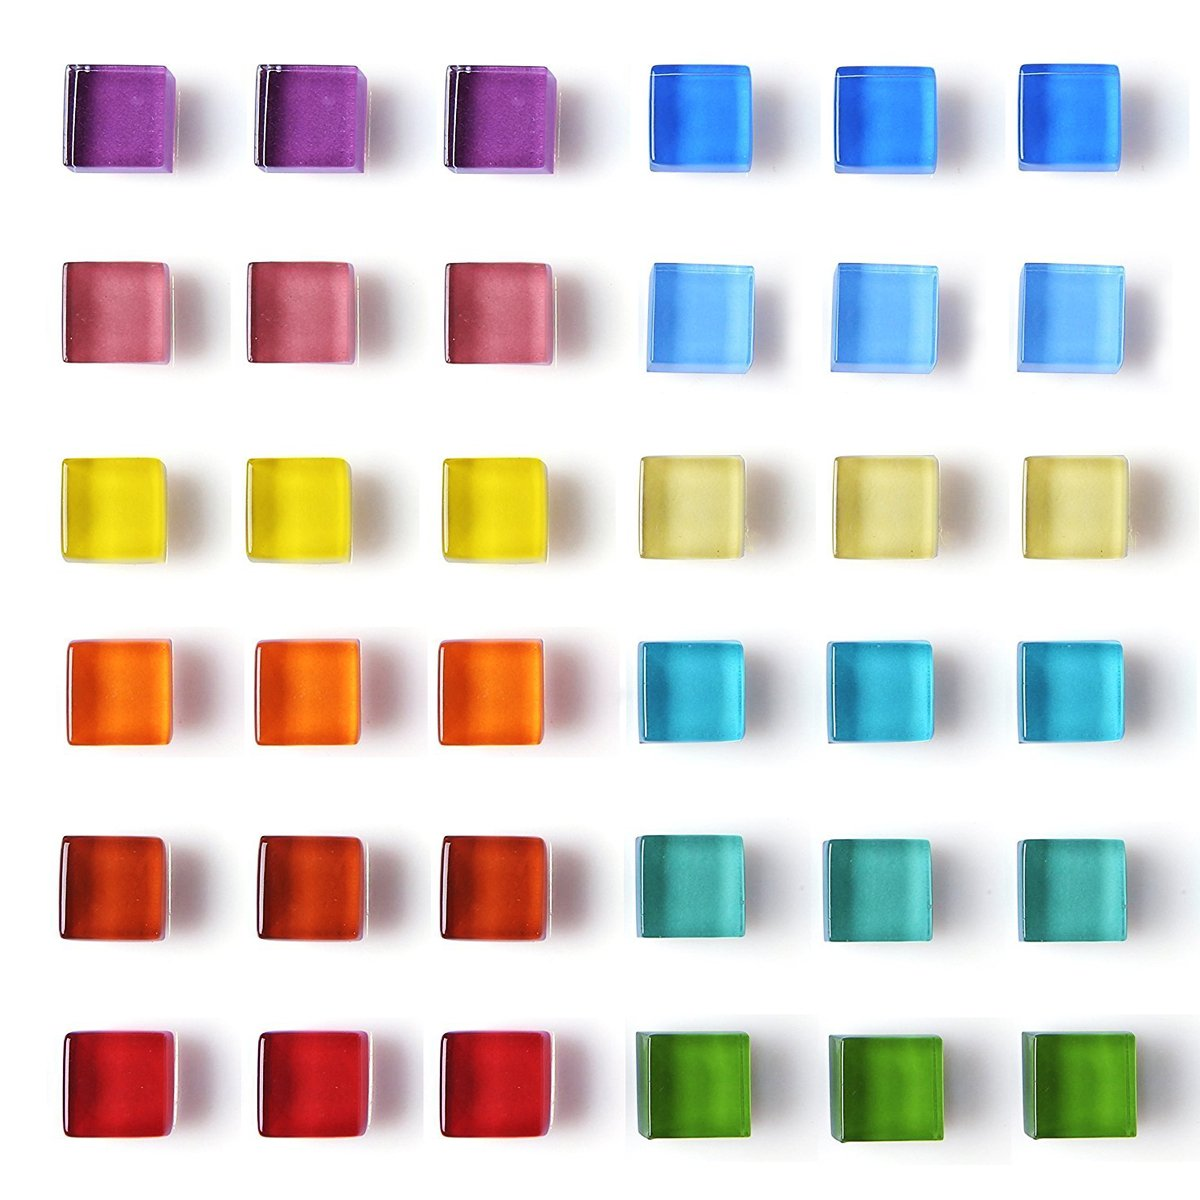 DIYSELF 36 pack fridge magnets for Whiteboard magnets mini refrigerator magnets strong office magnets Colorful Cute Fun Decoration (Glass)